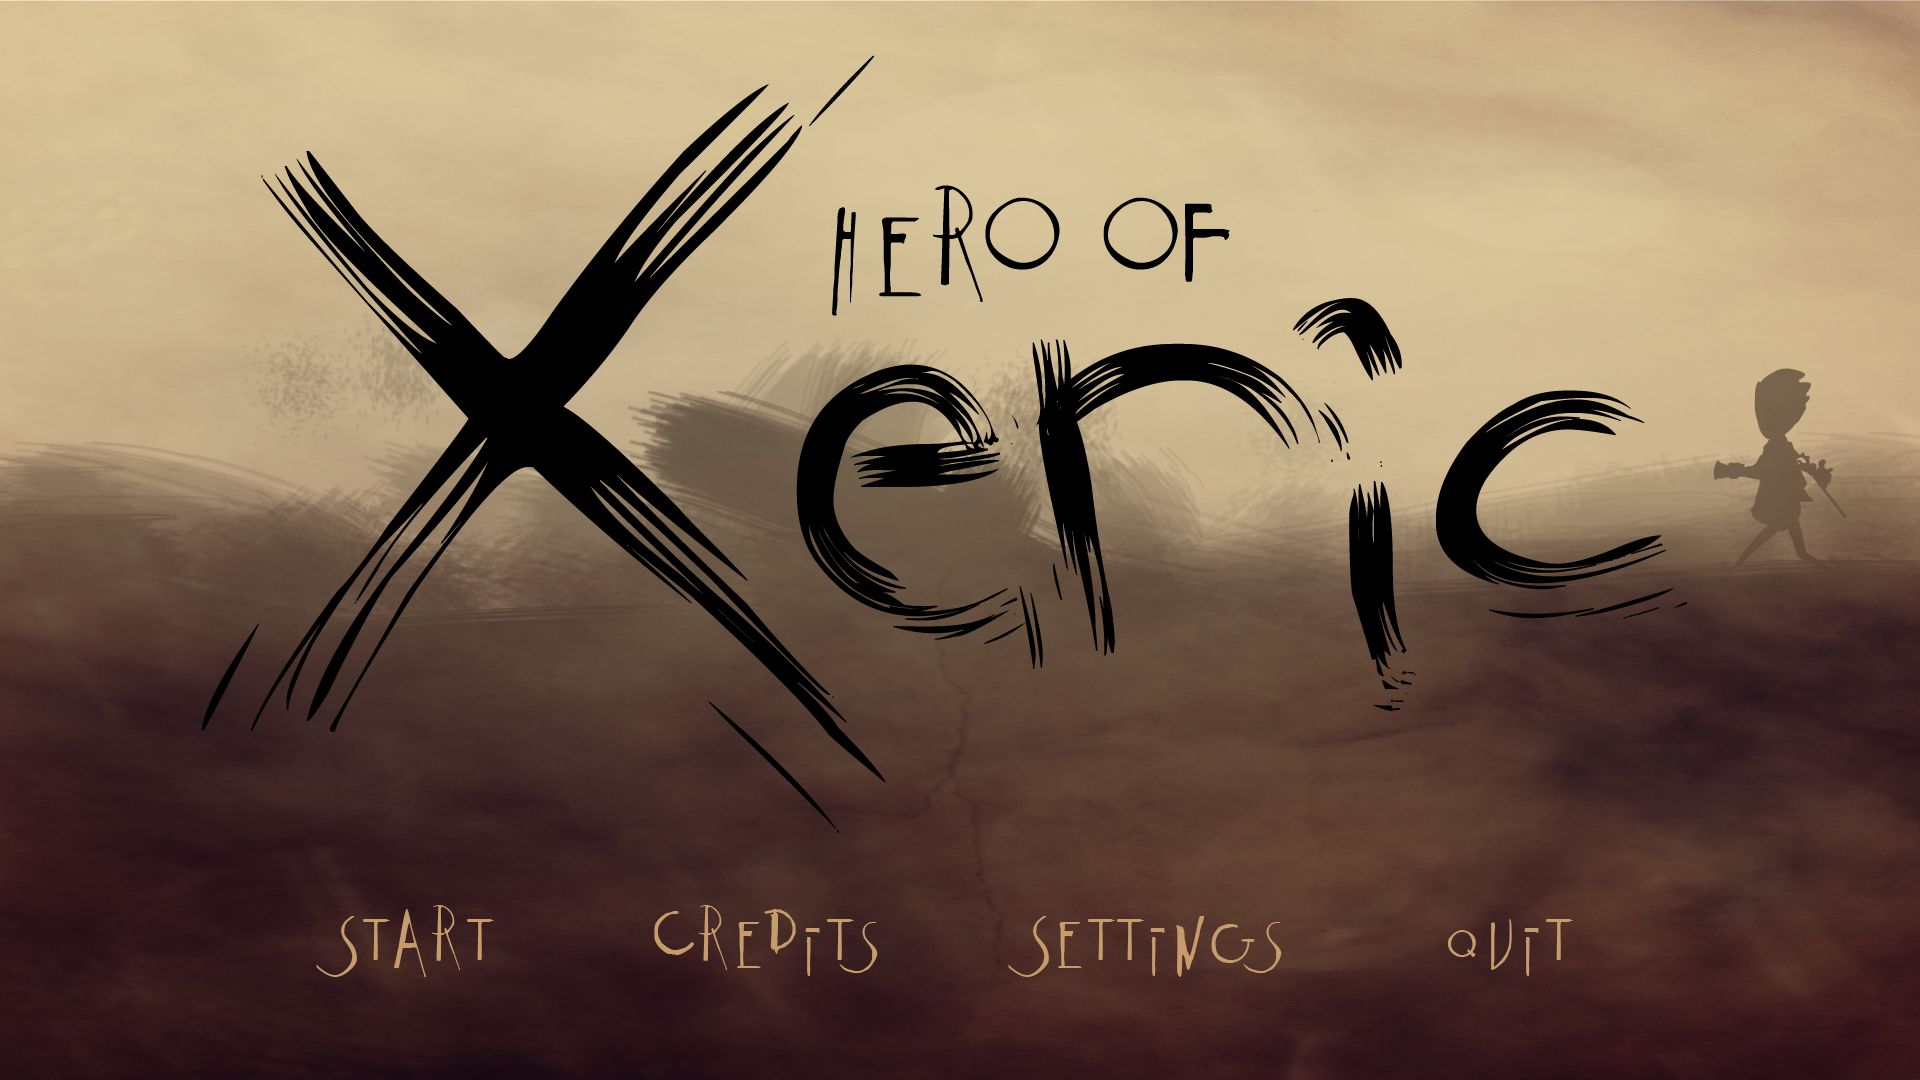 hero of xeric